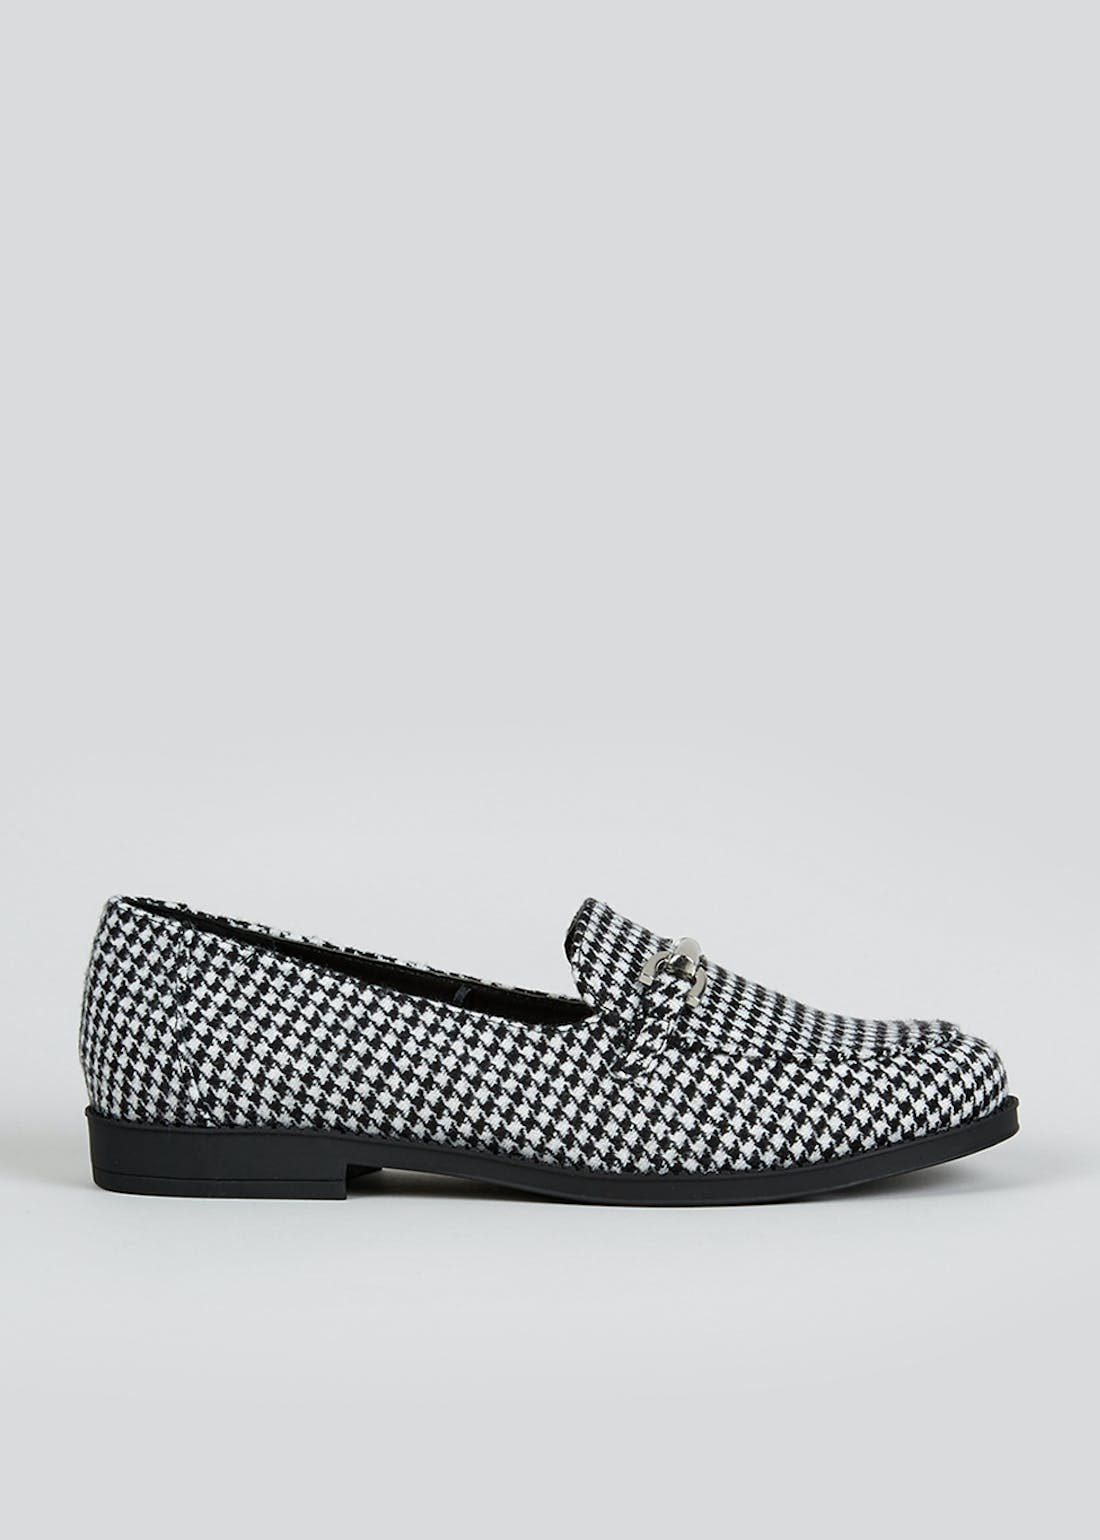 Black & White Dogtooth Loafers